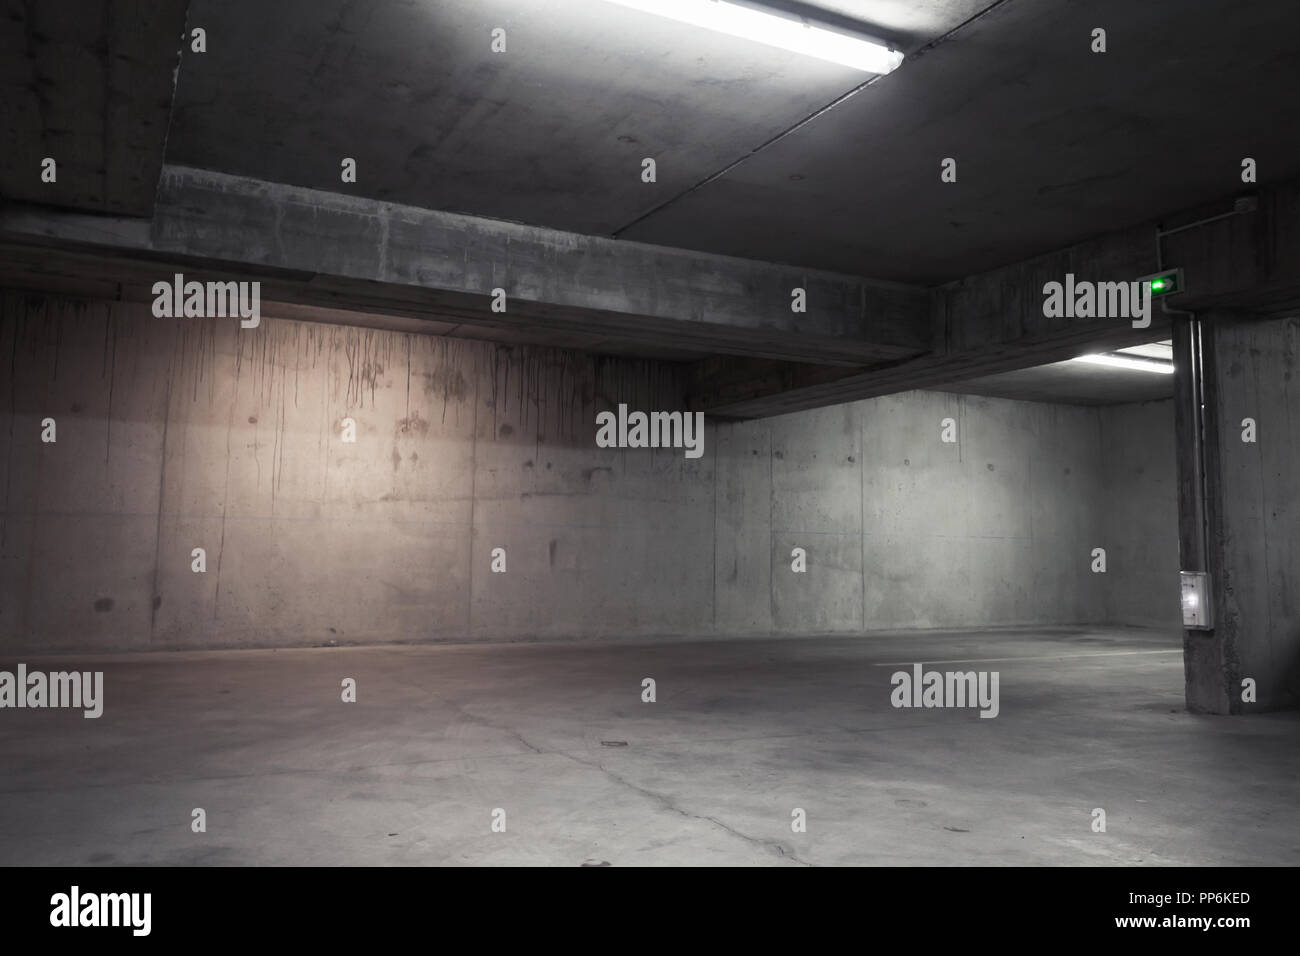 Abstract empty garage interior background with concrete walls and